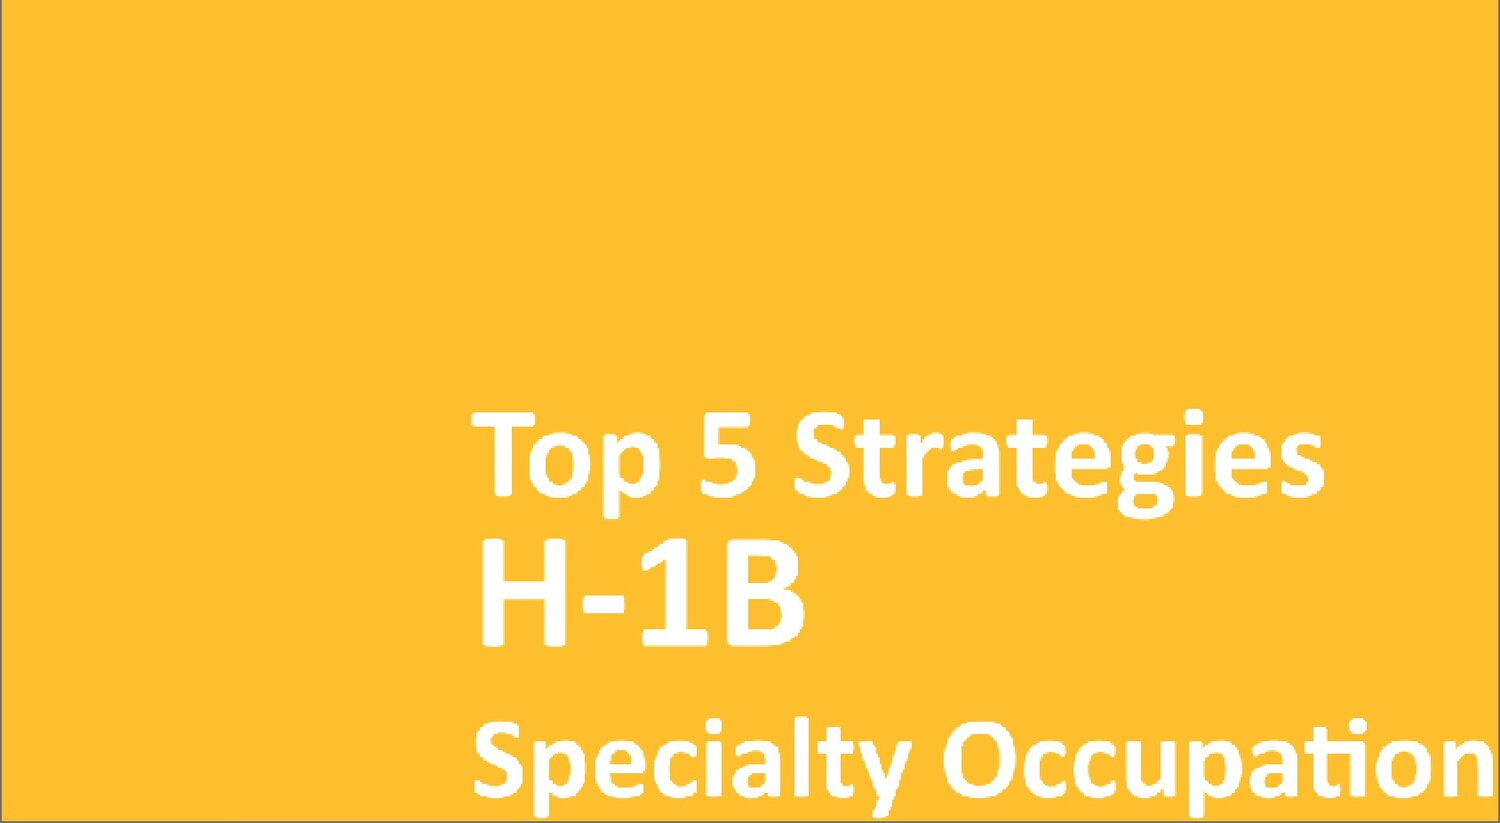 Top 5 Strategies For H1B Specialty Occupation (2019 ed): Improve